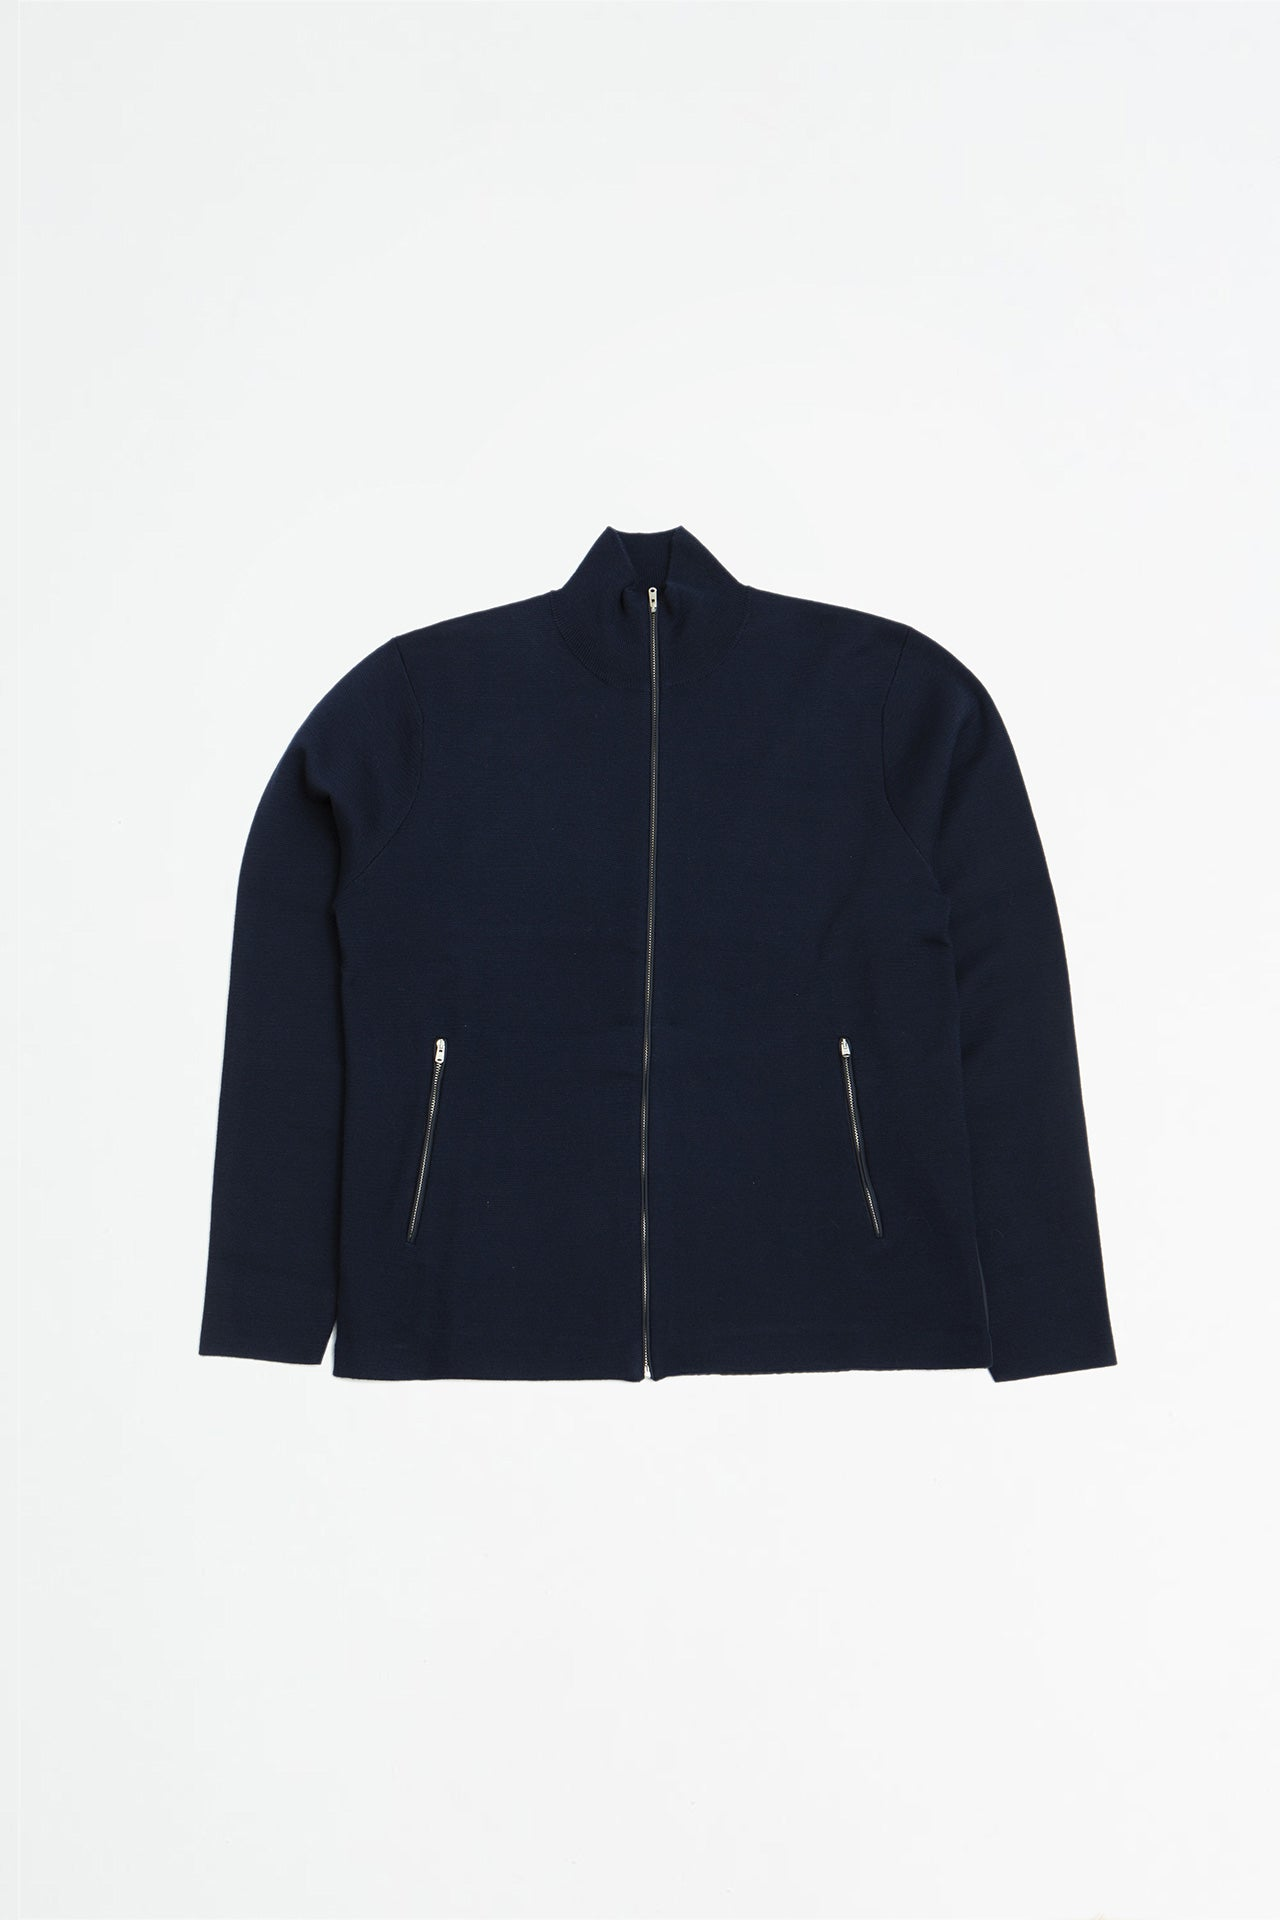 Fjord tech half zip dark navy